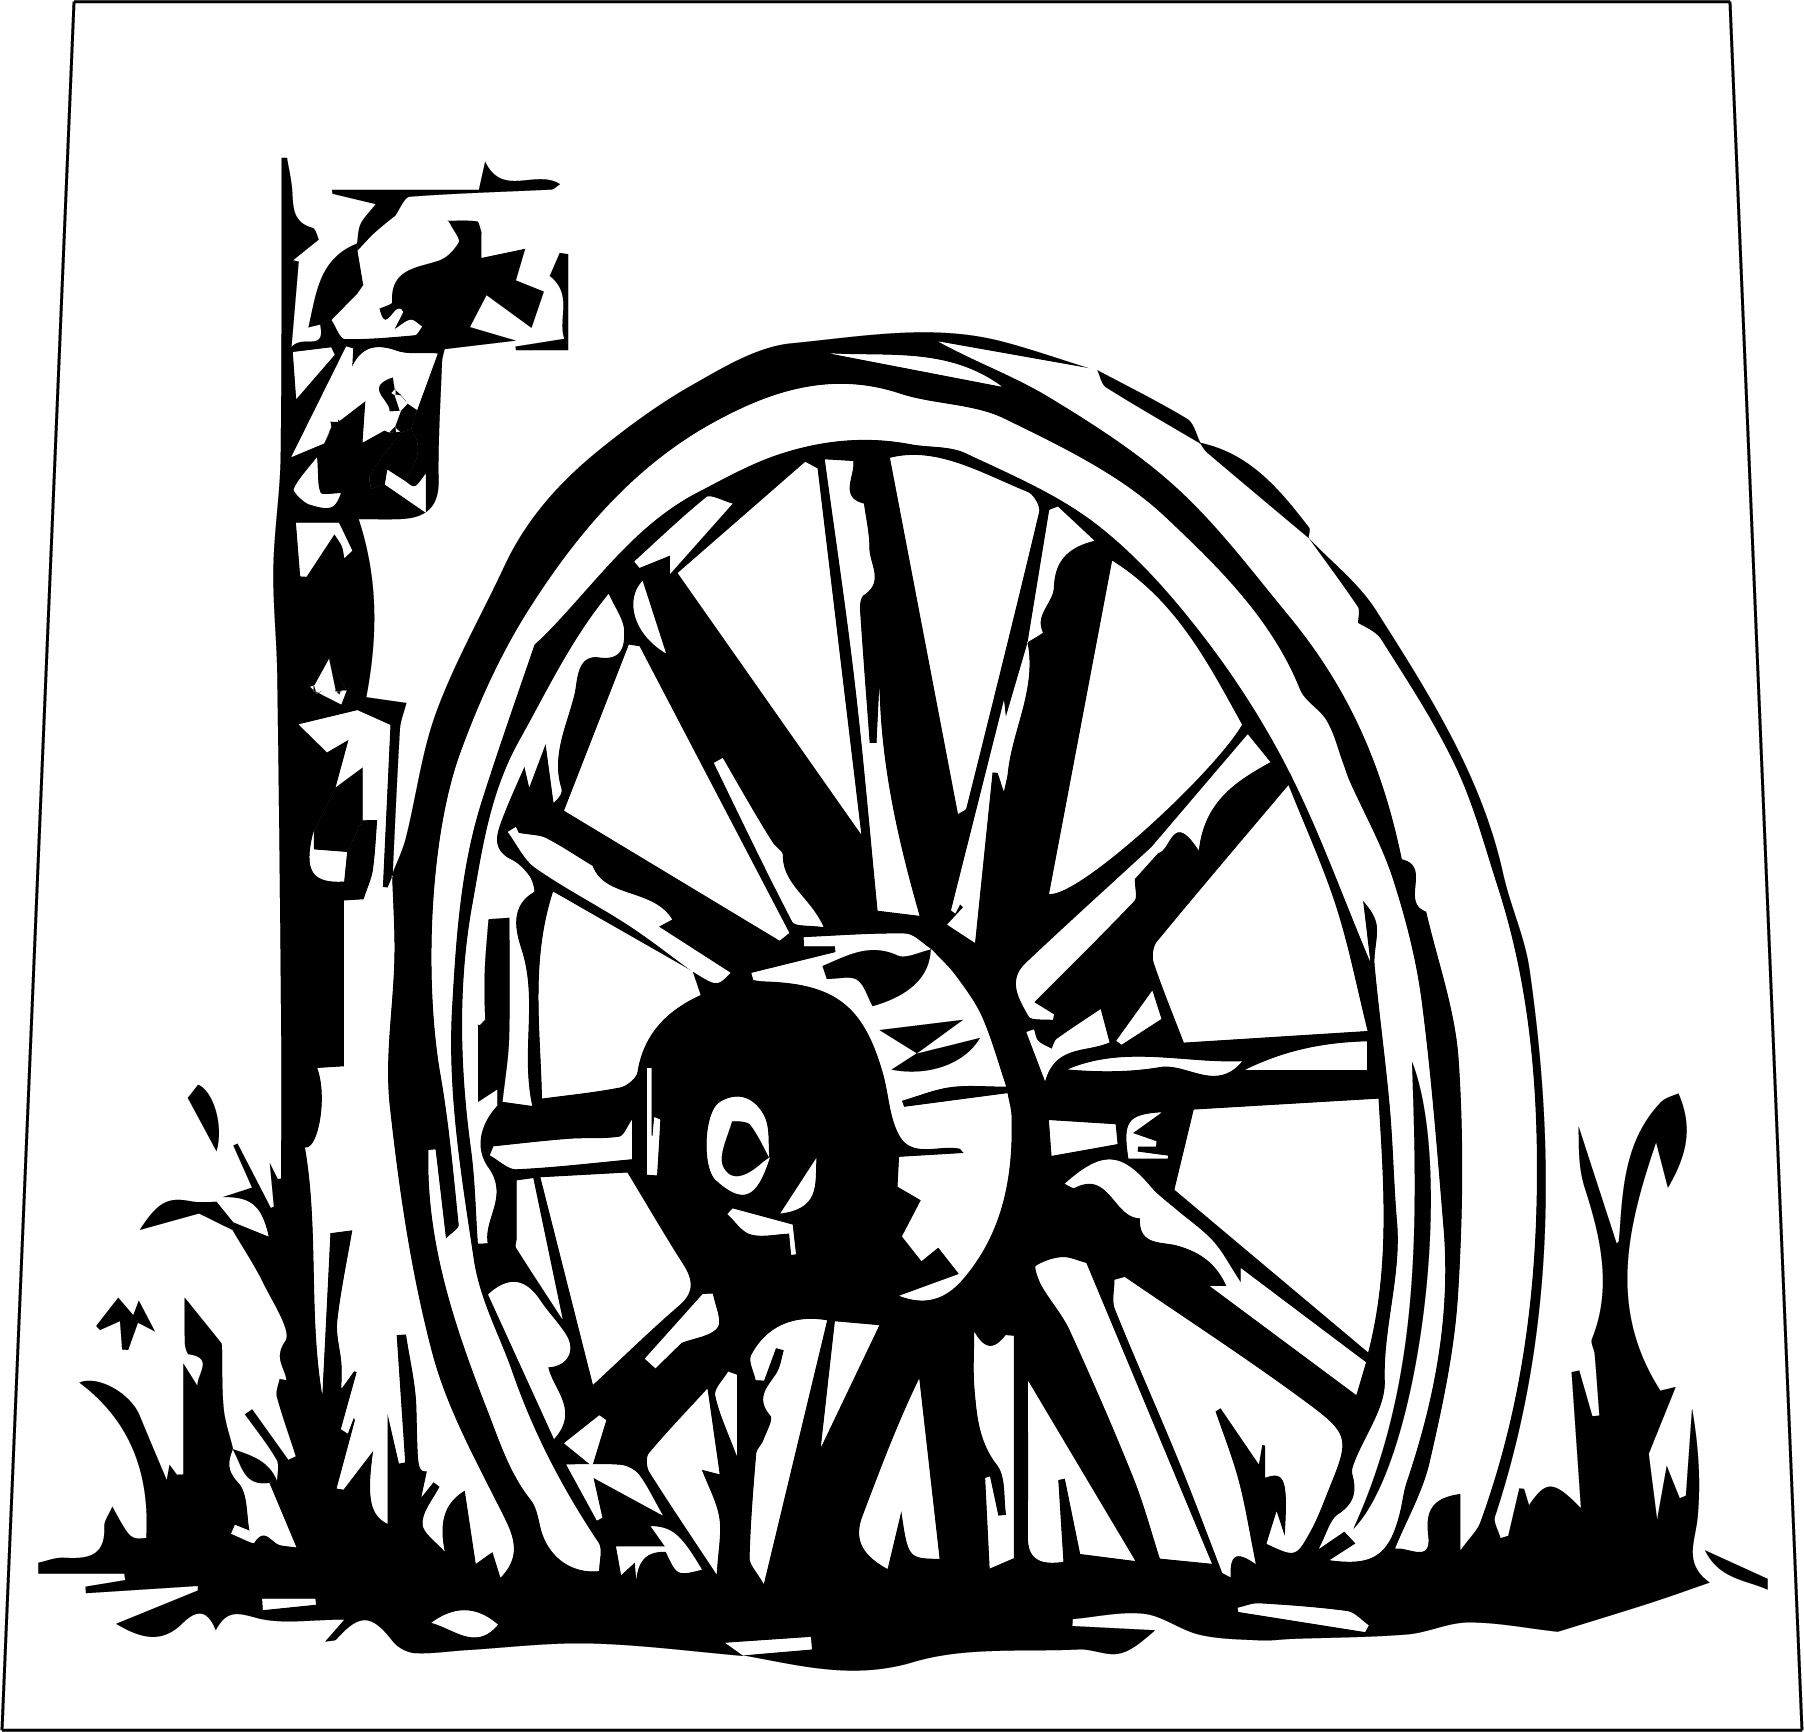 1804x1732 wagon wheel wagon wheel s wagon wheel, drawings, body art